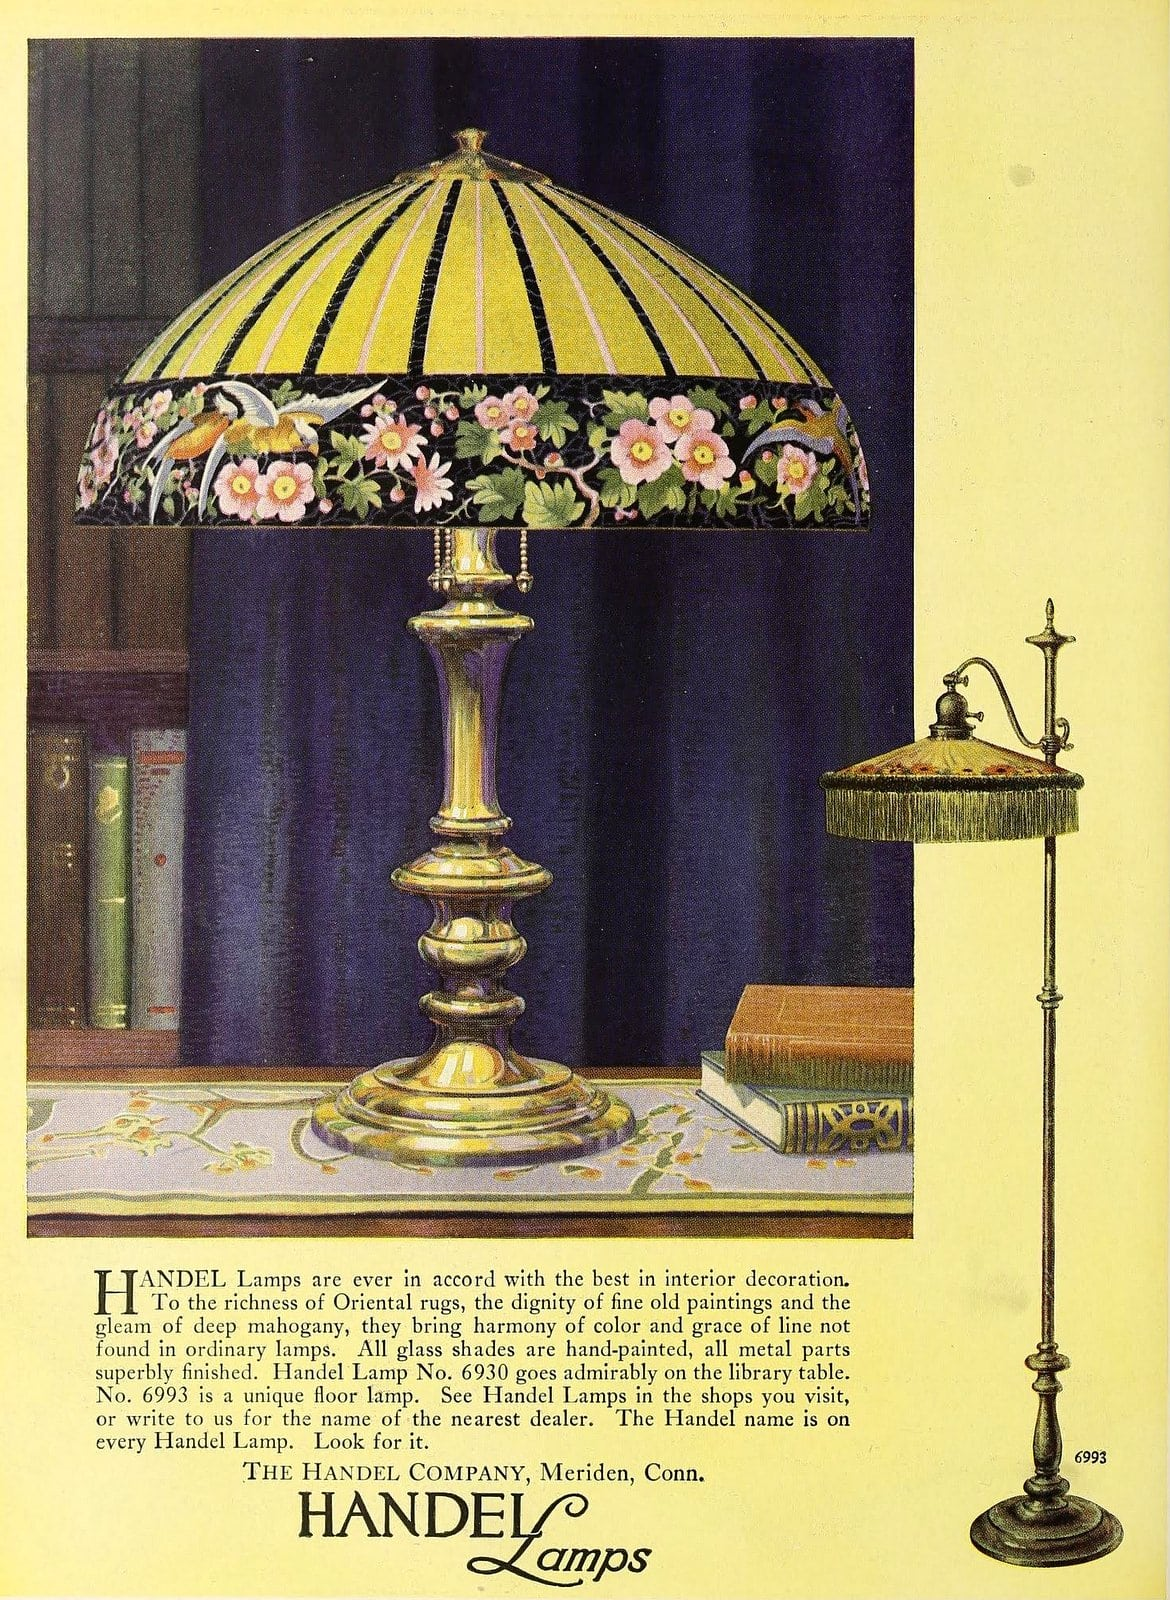 Antique glass shade table lamp from Handel (1922)